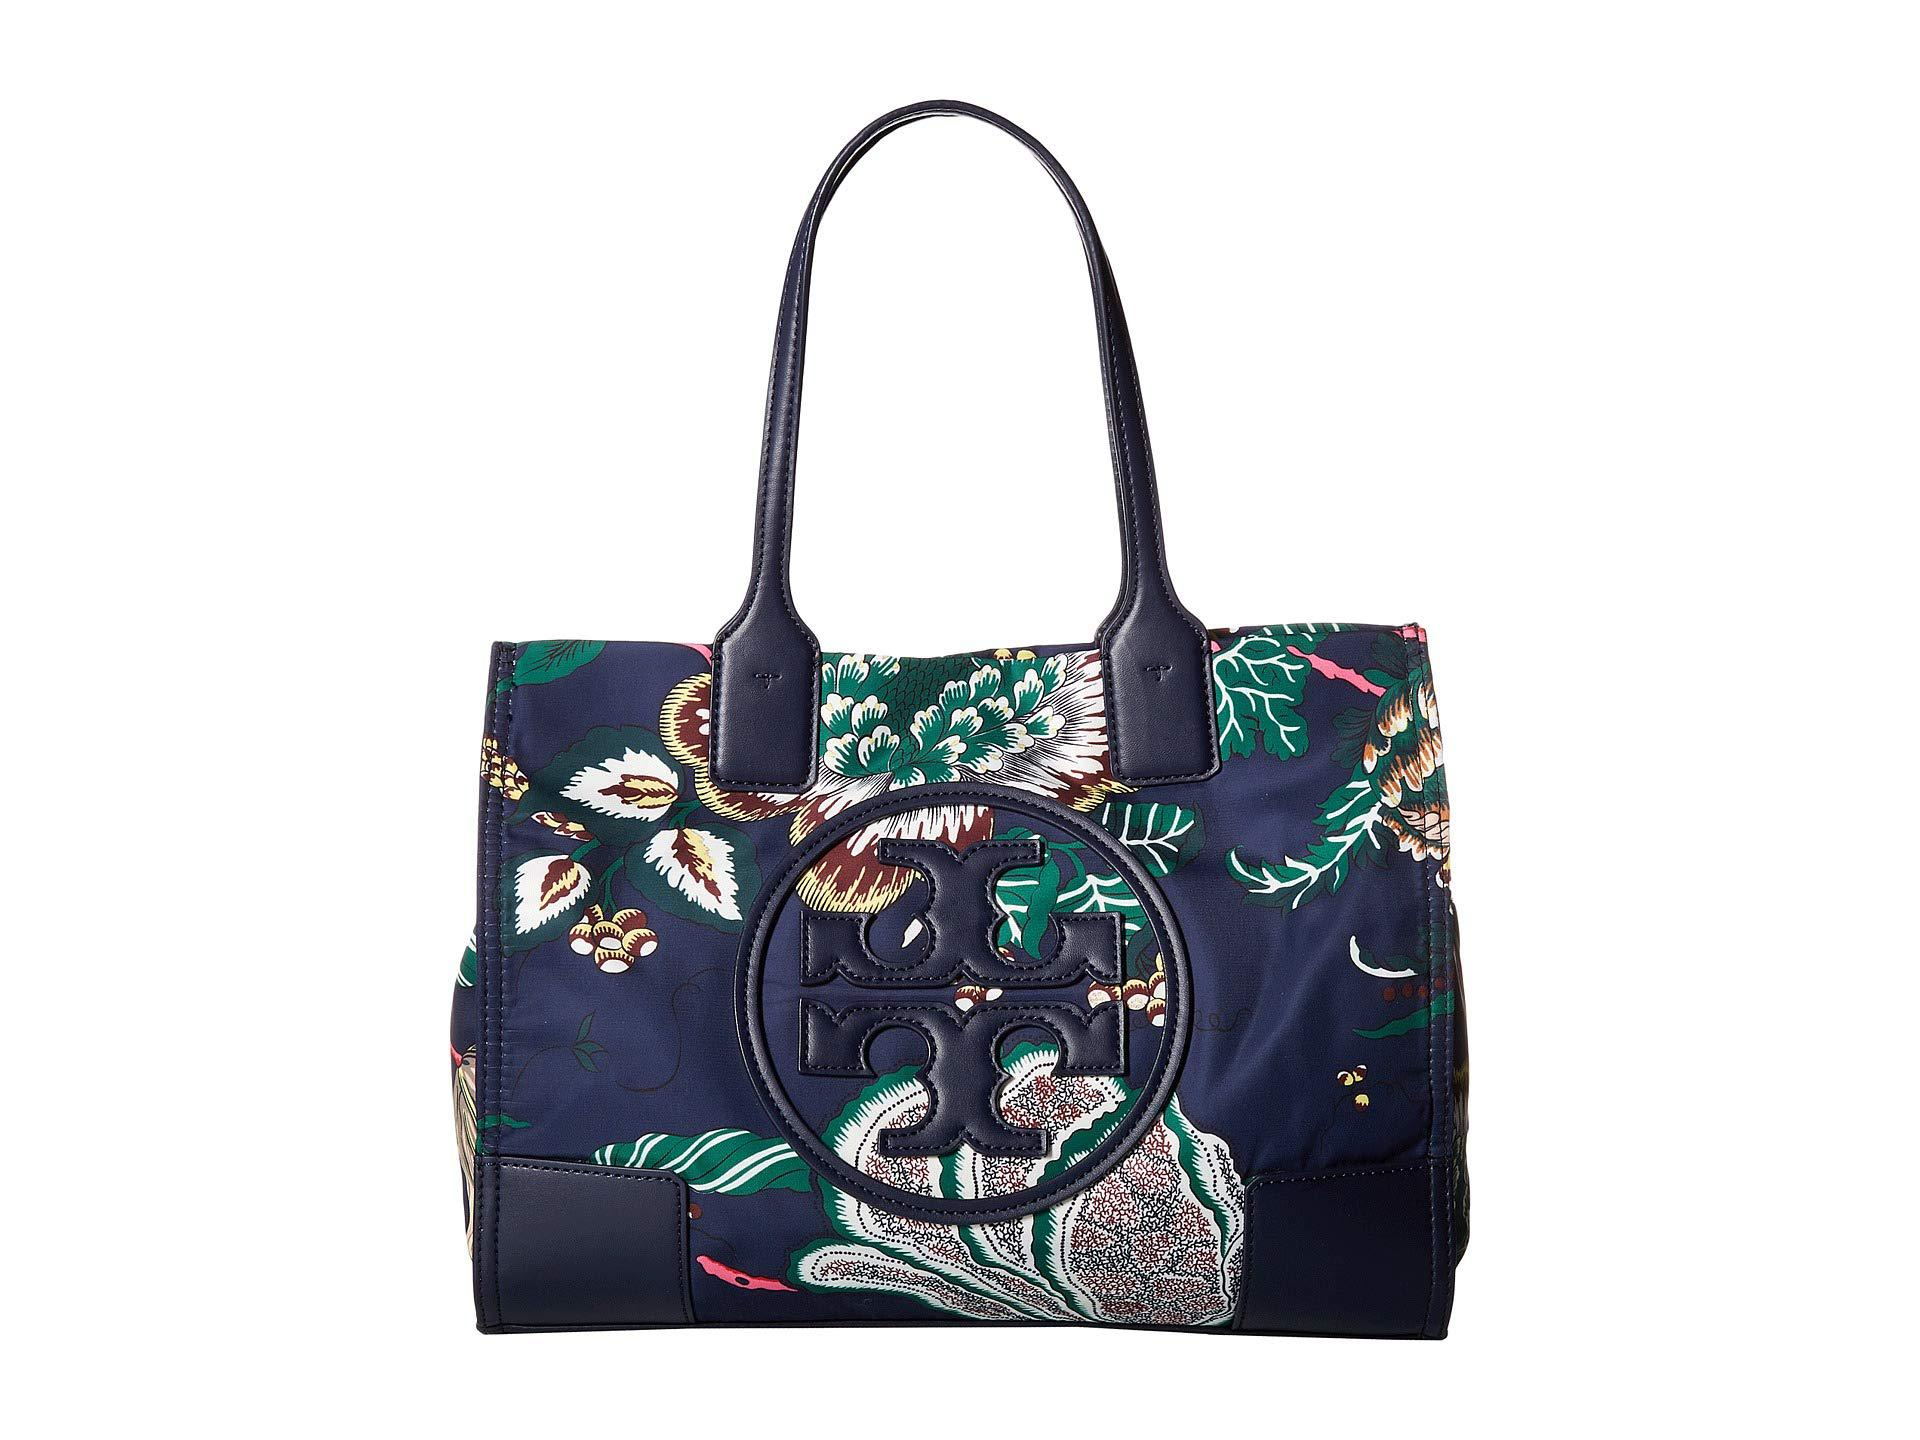 056002d99dfc Lyst - Tory Burch Ella Printed Mini Tote (navy Happy Times) Tote ...